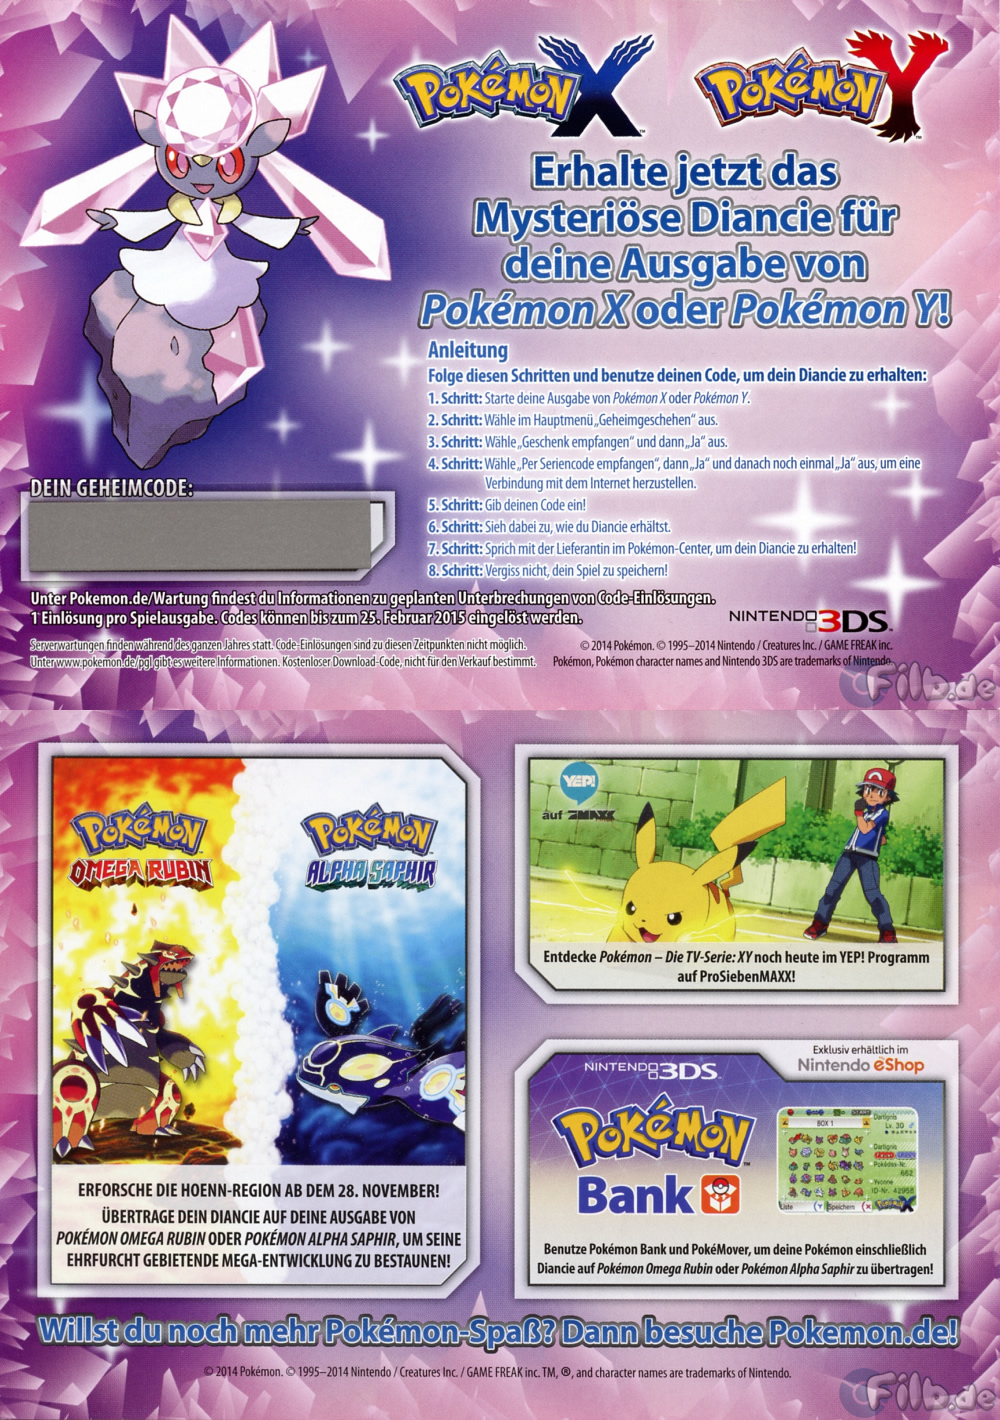 how to get diancie without code